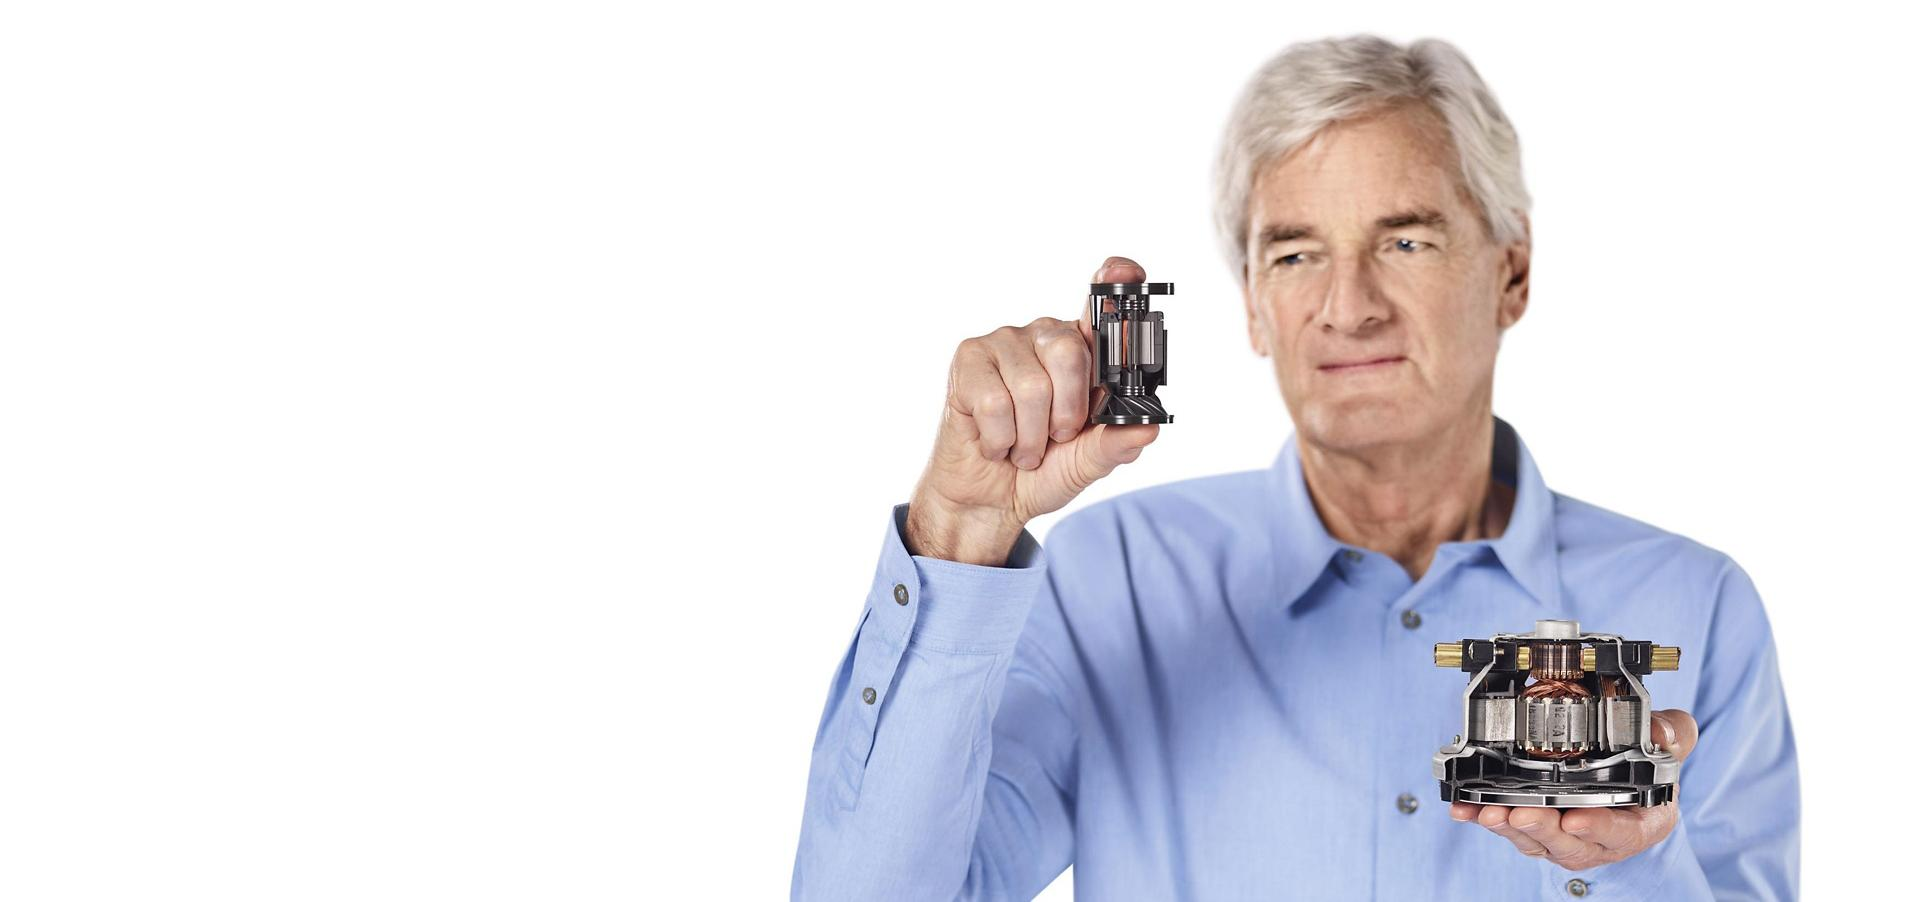 Dyson's founder and engineer, James Dyson